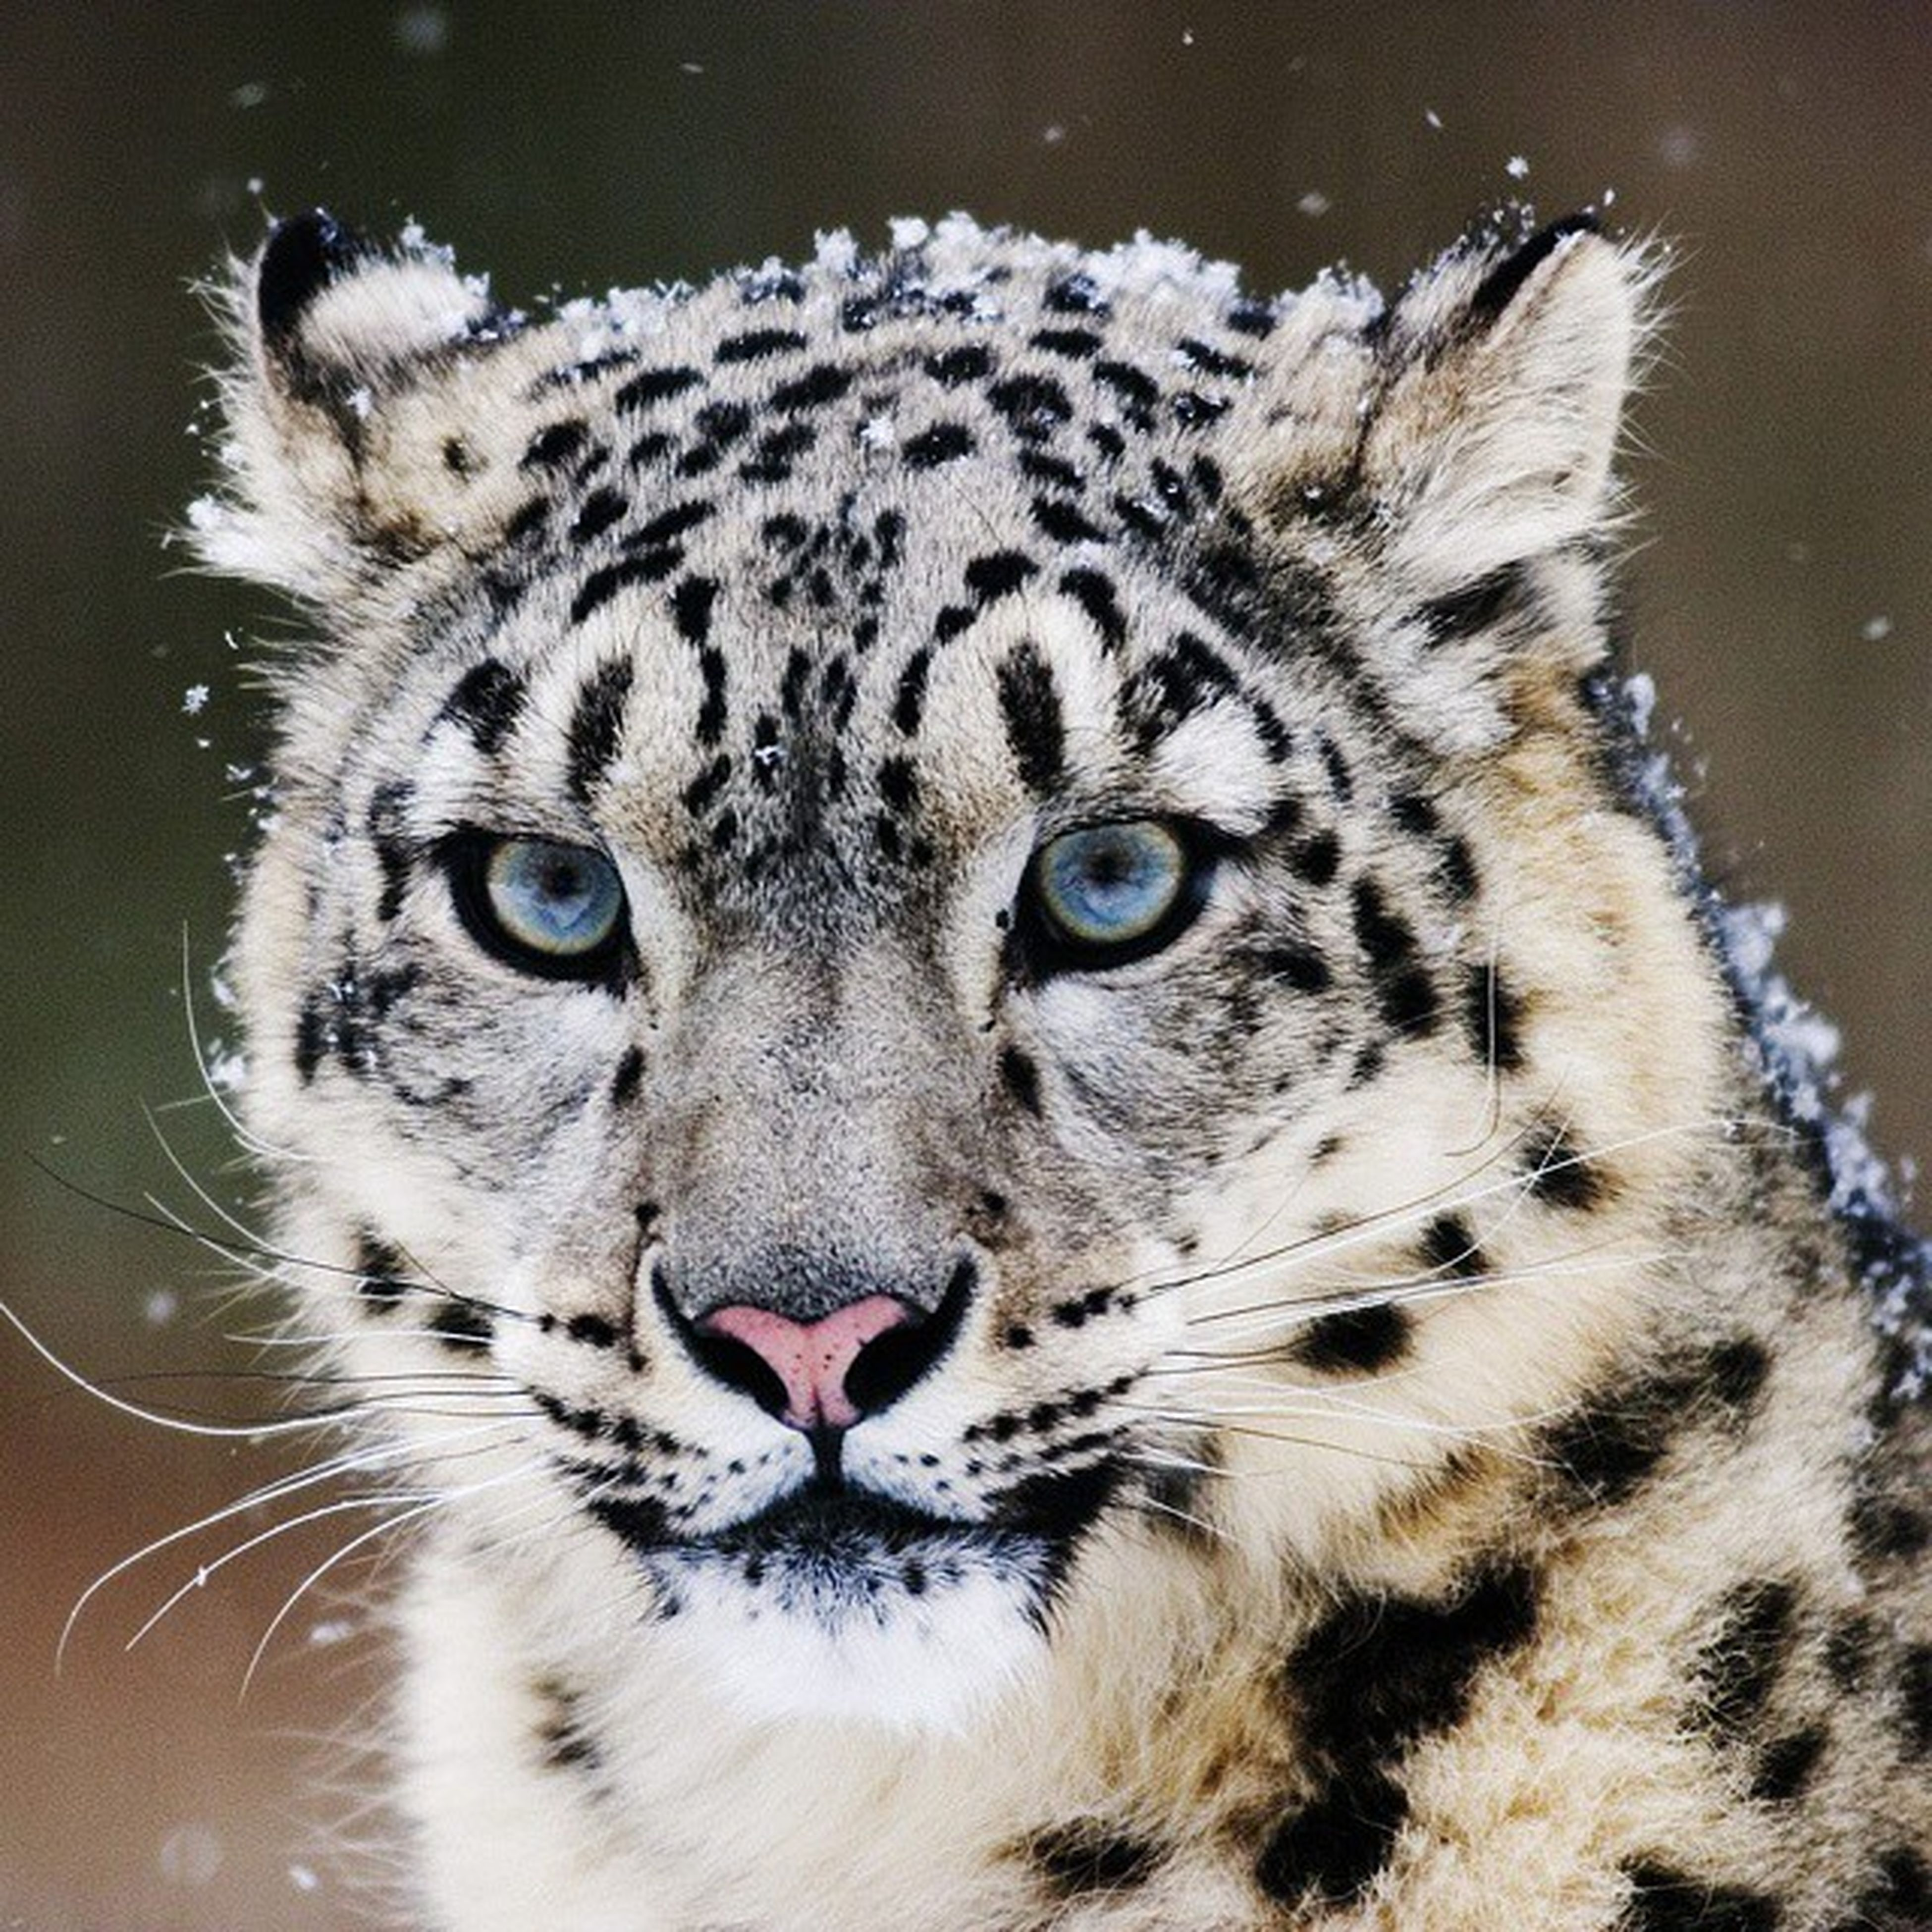 animal themes, one animal, animals in the wild, animal markings, wildlife, animal head, mammal, close-up, portrait, animal body part, tiger, safari animals, whisker, looking at camera, focus on foreground, endangered species, big cat, natural pattern, zoo, zoology